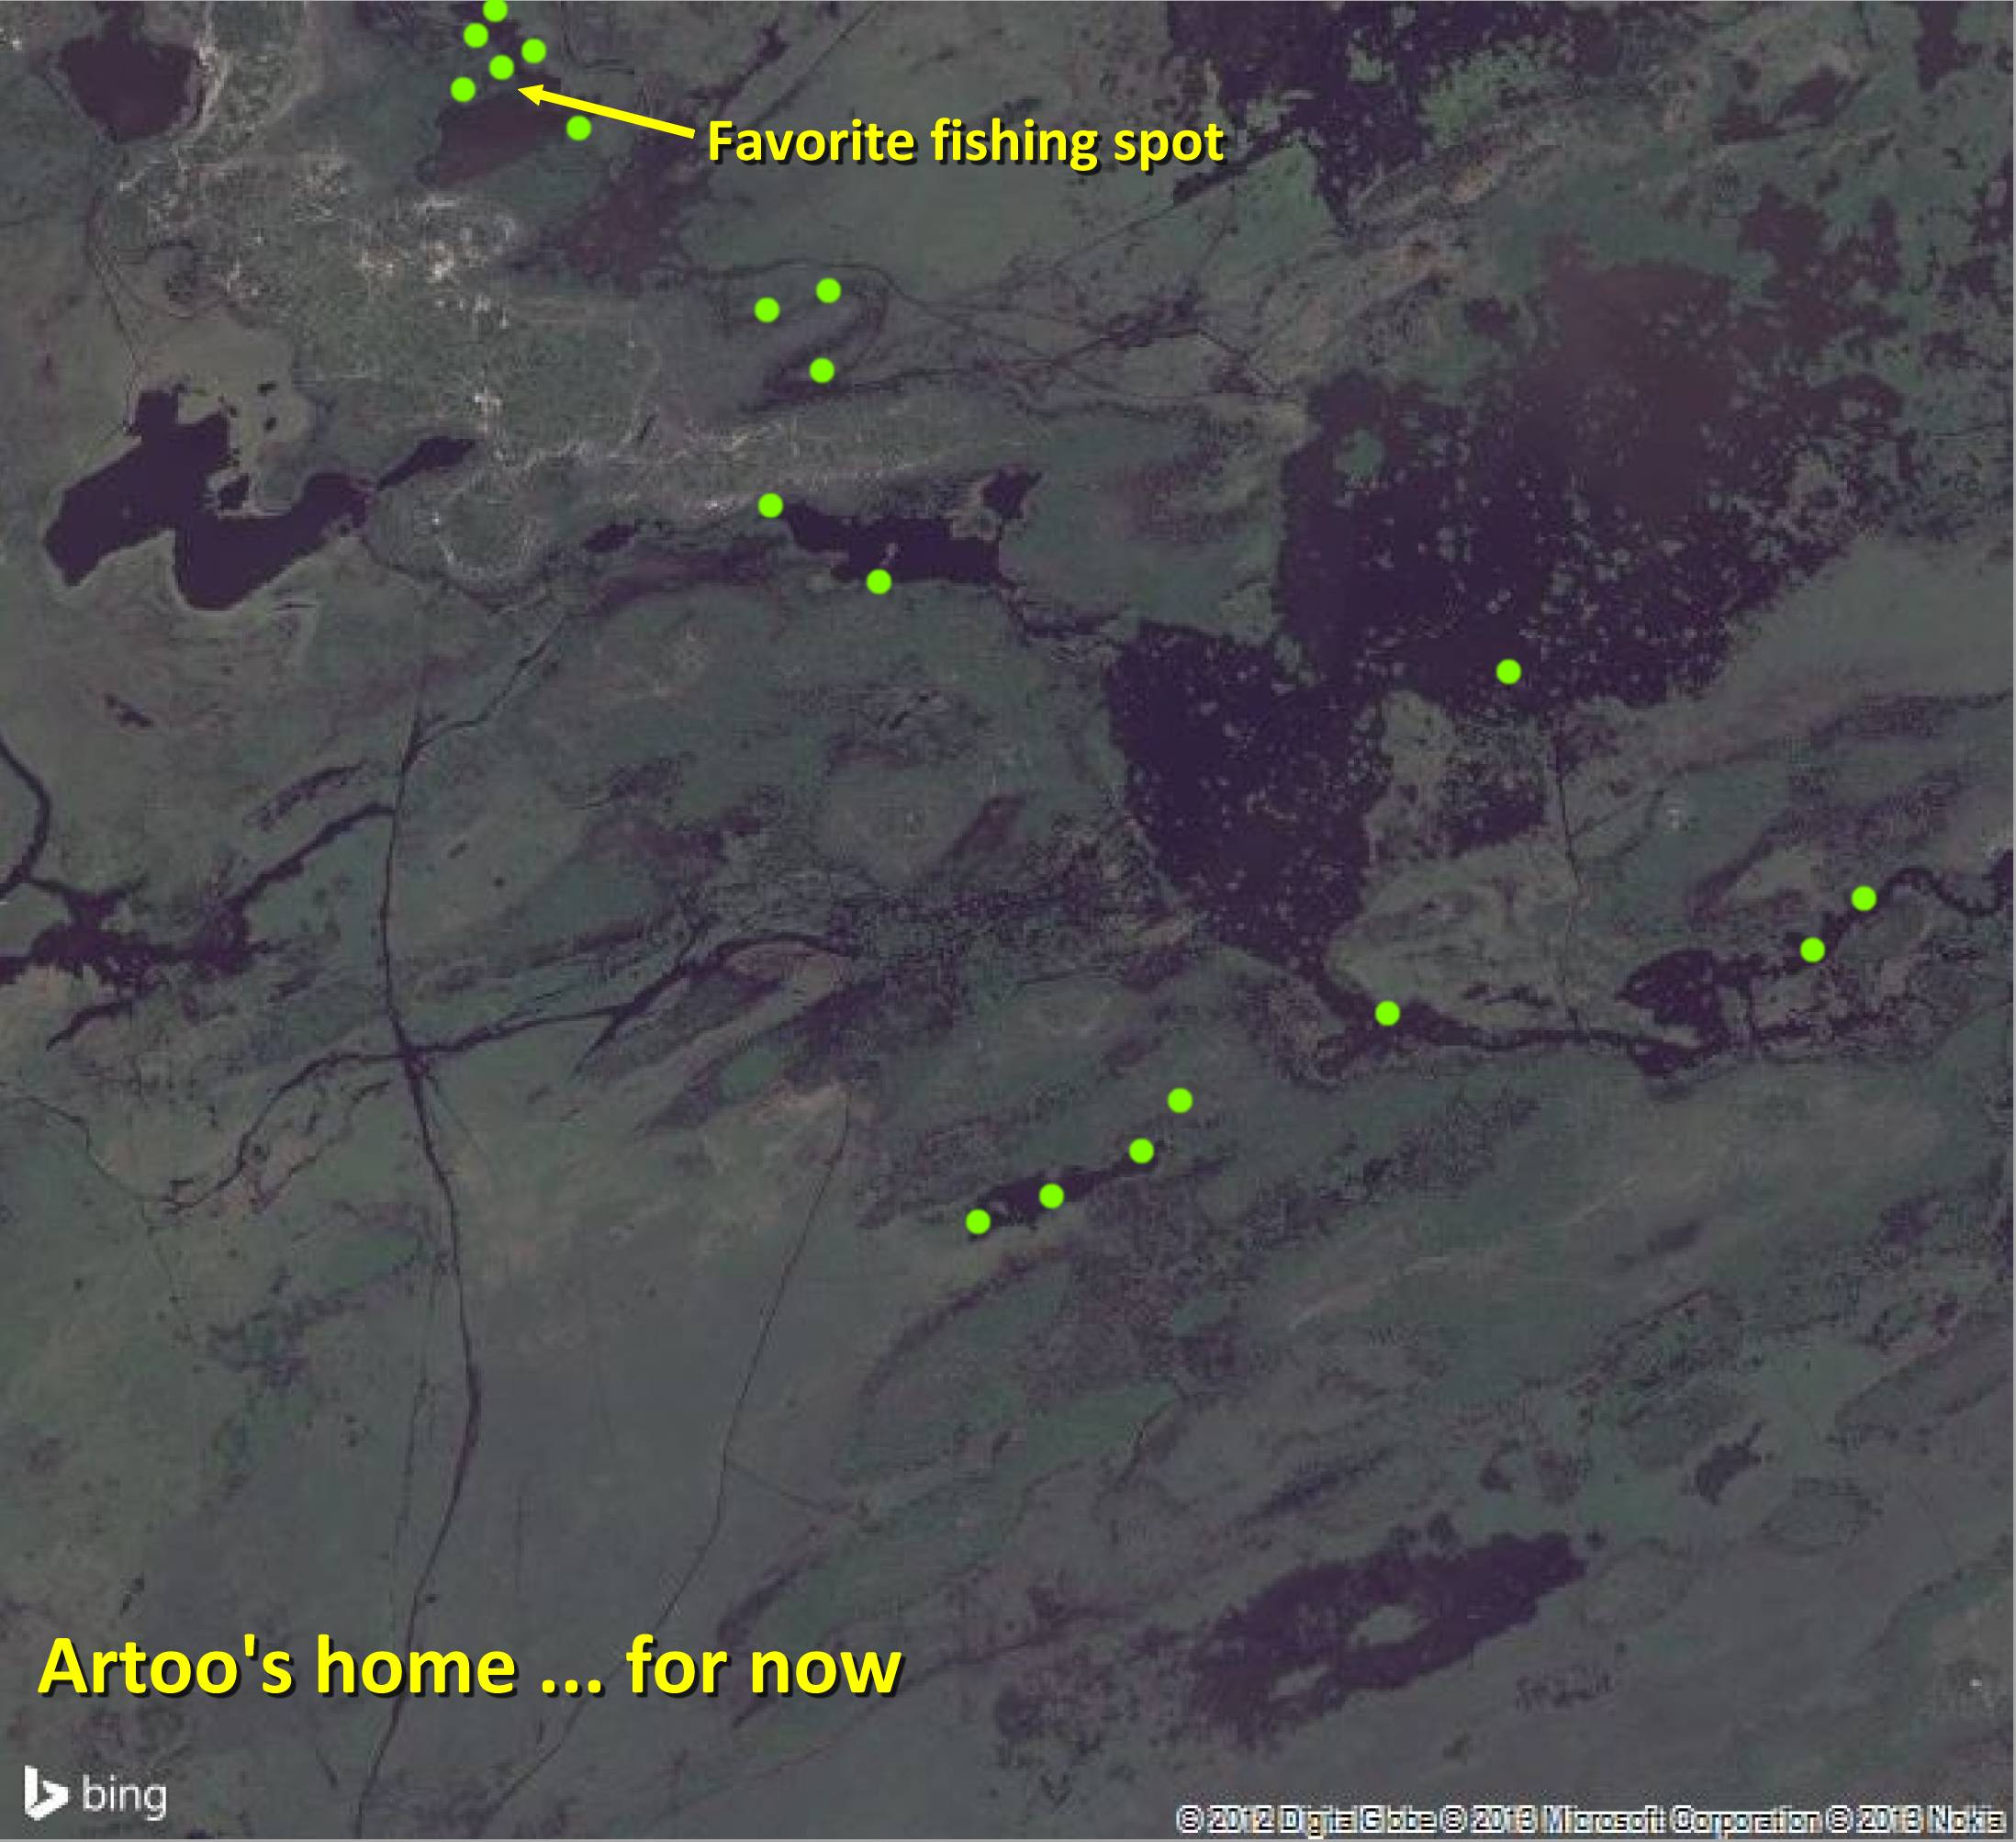 Artoo - November 1, 2013 (Bing Map)